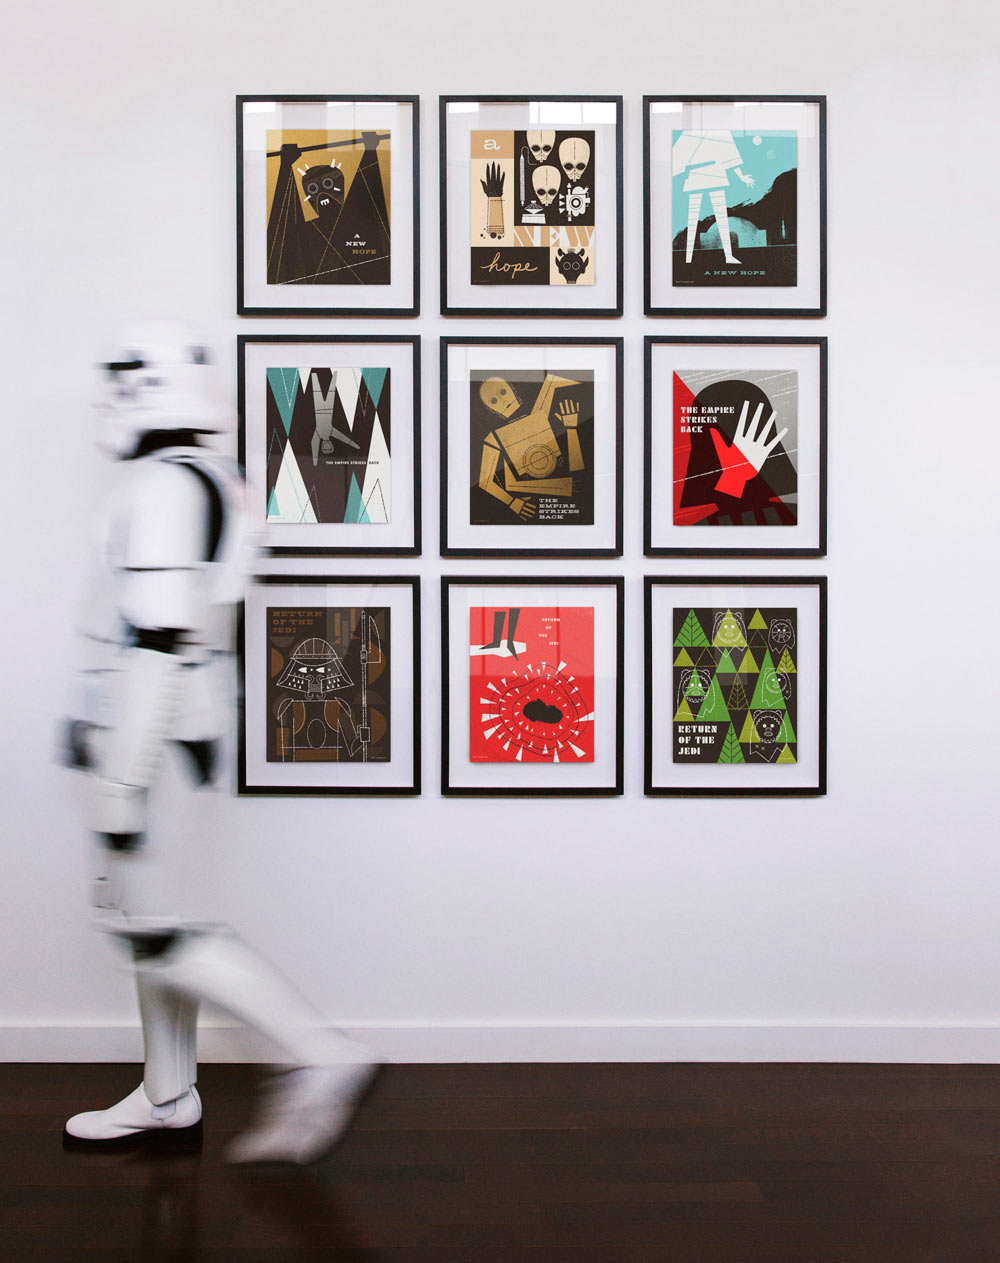 Star Wars Storm trooper&posters by Ty Mattson